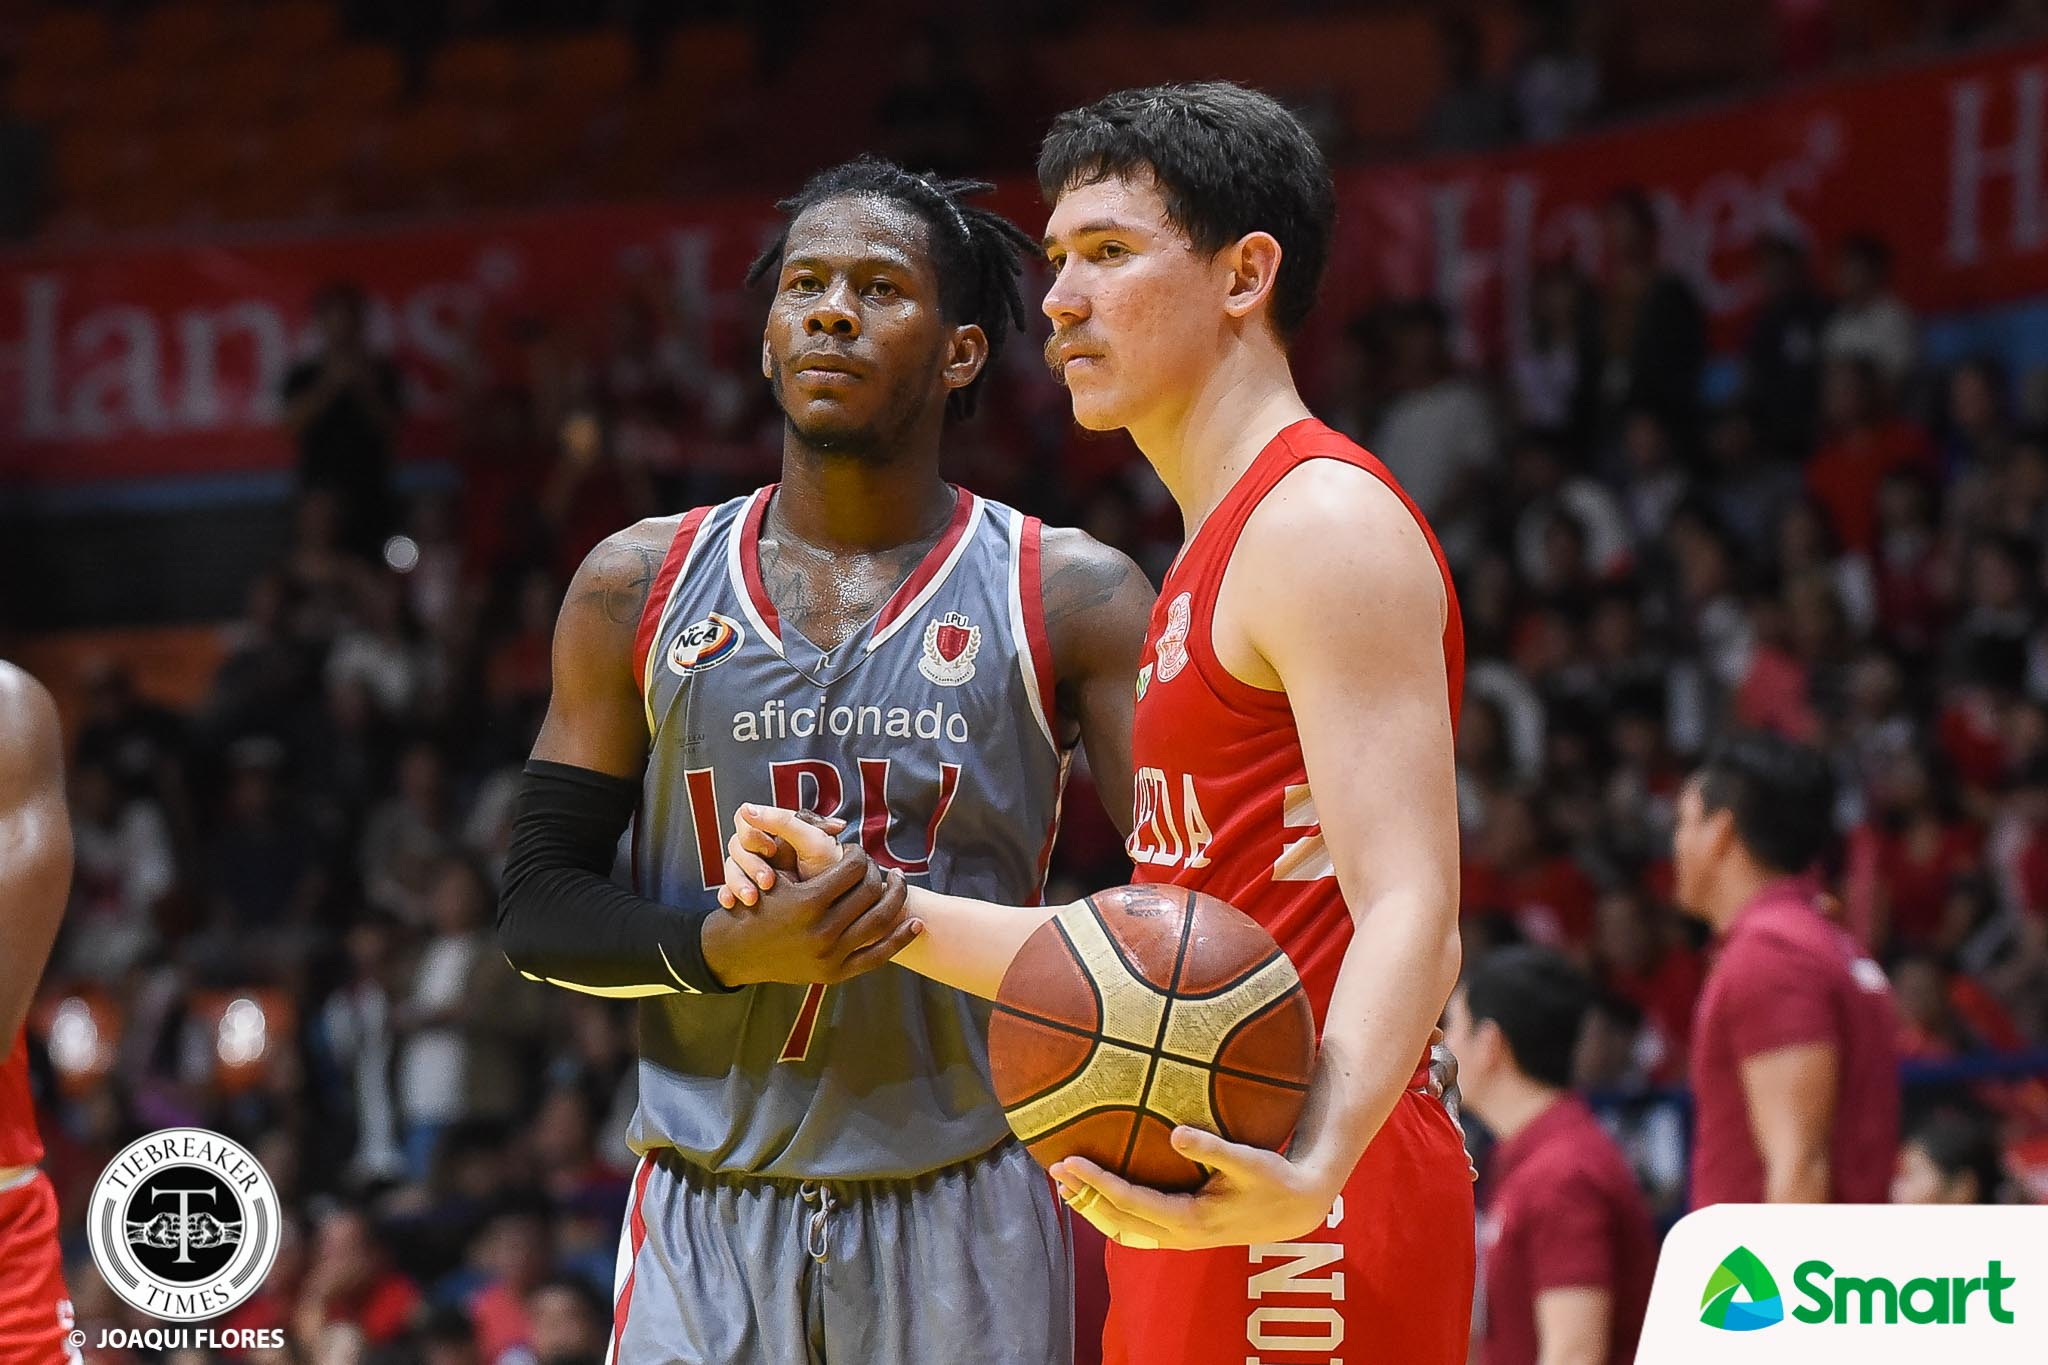 Tiebreaker Times Boyet Fernandez remains wary of Lyceum: 'With or without CJ, LPU is still a strong team' Basketball NCAA News SBC  San Beda Seniors Basketball NCAA Season 94 Seniors Basketball NCAA Season 94 CJ Perez Boyet Fernandez